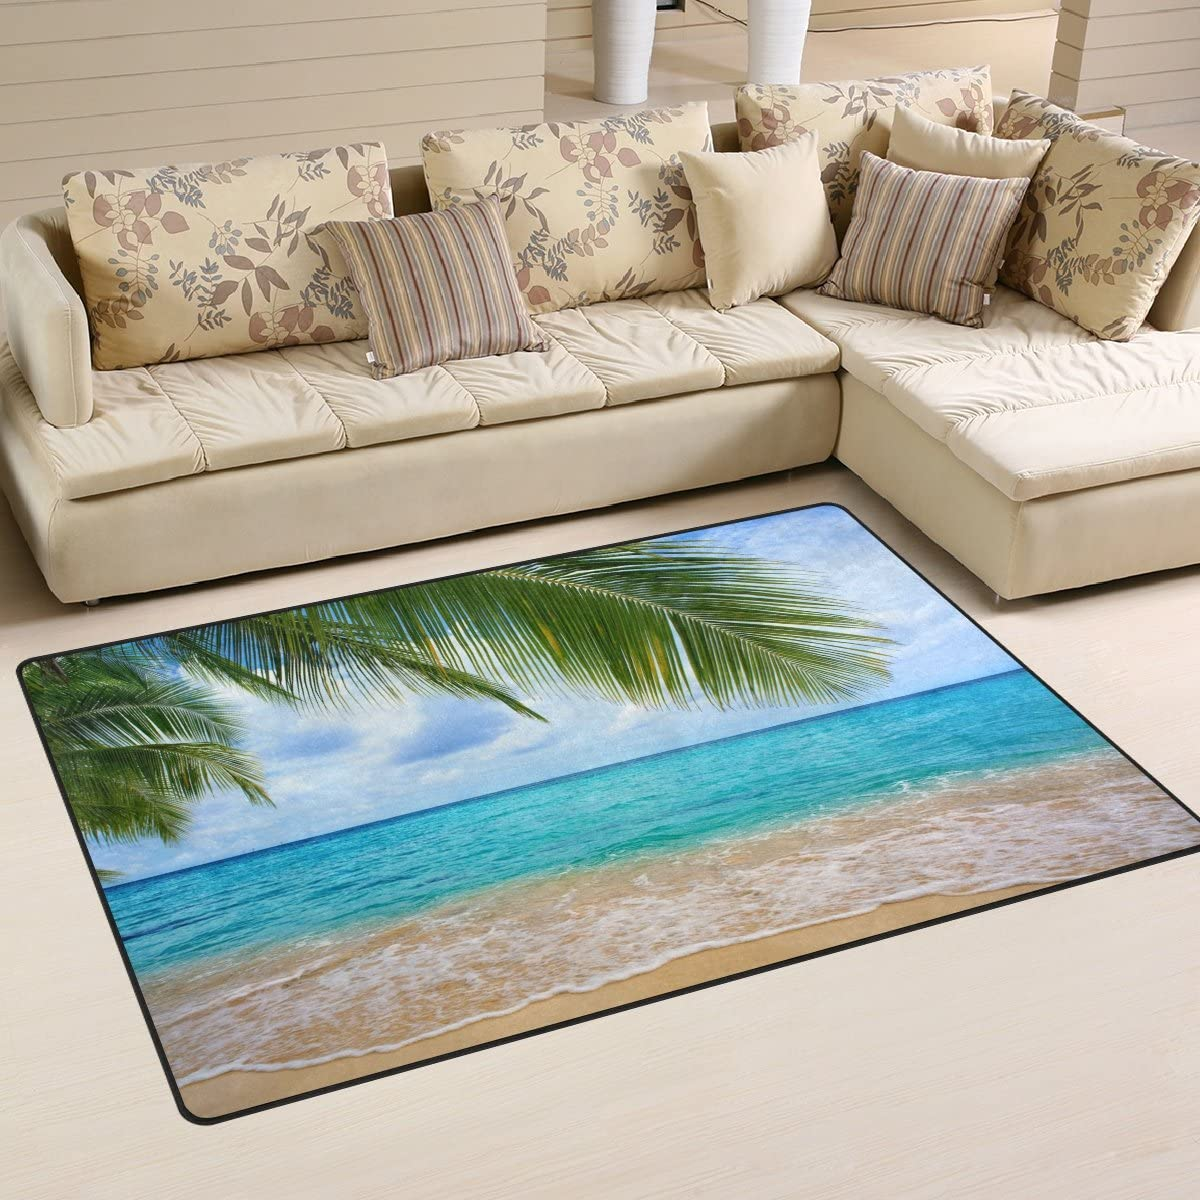 WOZO Summer Palm Leaf Sea Wave Blue Sky Area Rug Rugs Non-Slip Floor Mat Doormats Living Dining Room Bedroom Dorm 60 x 39 inches inches Home Decor